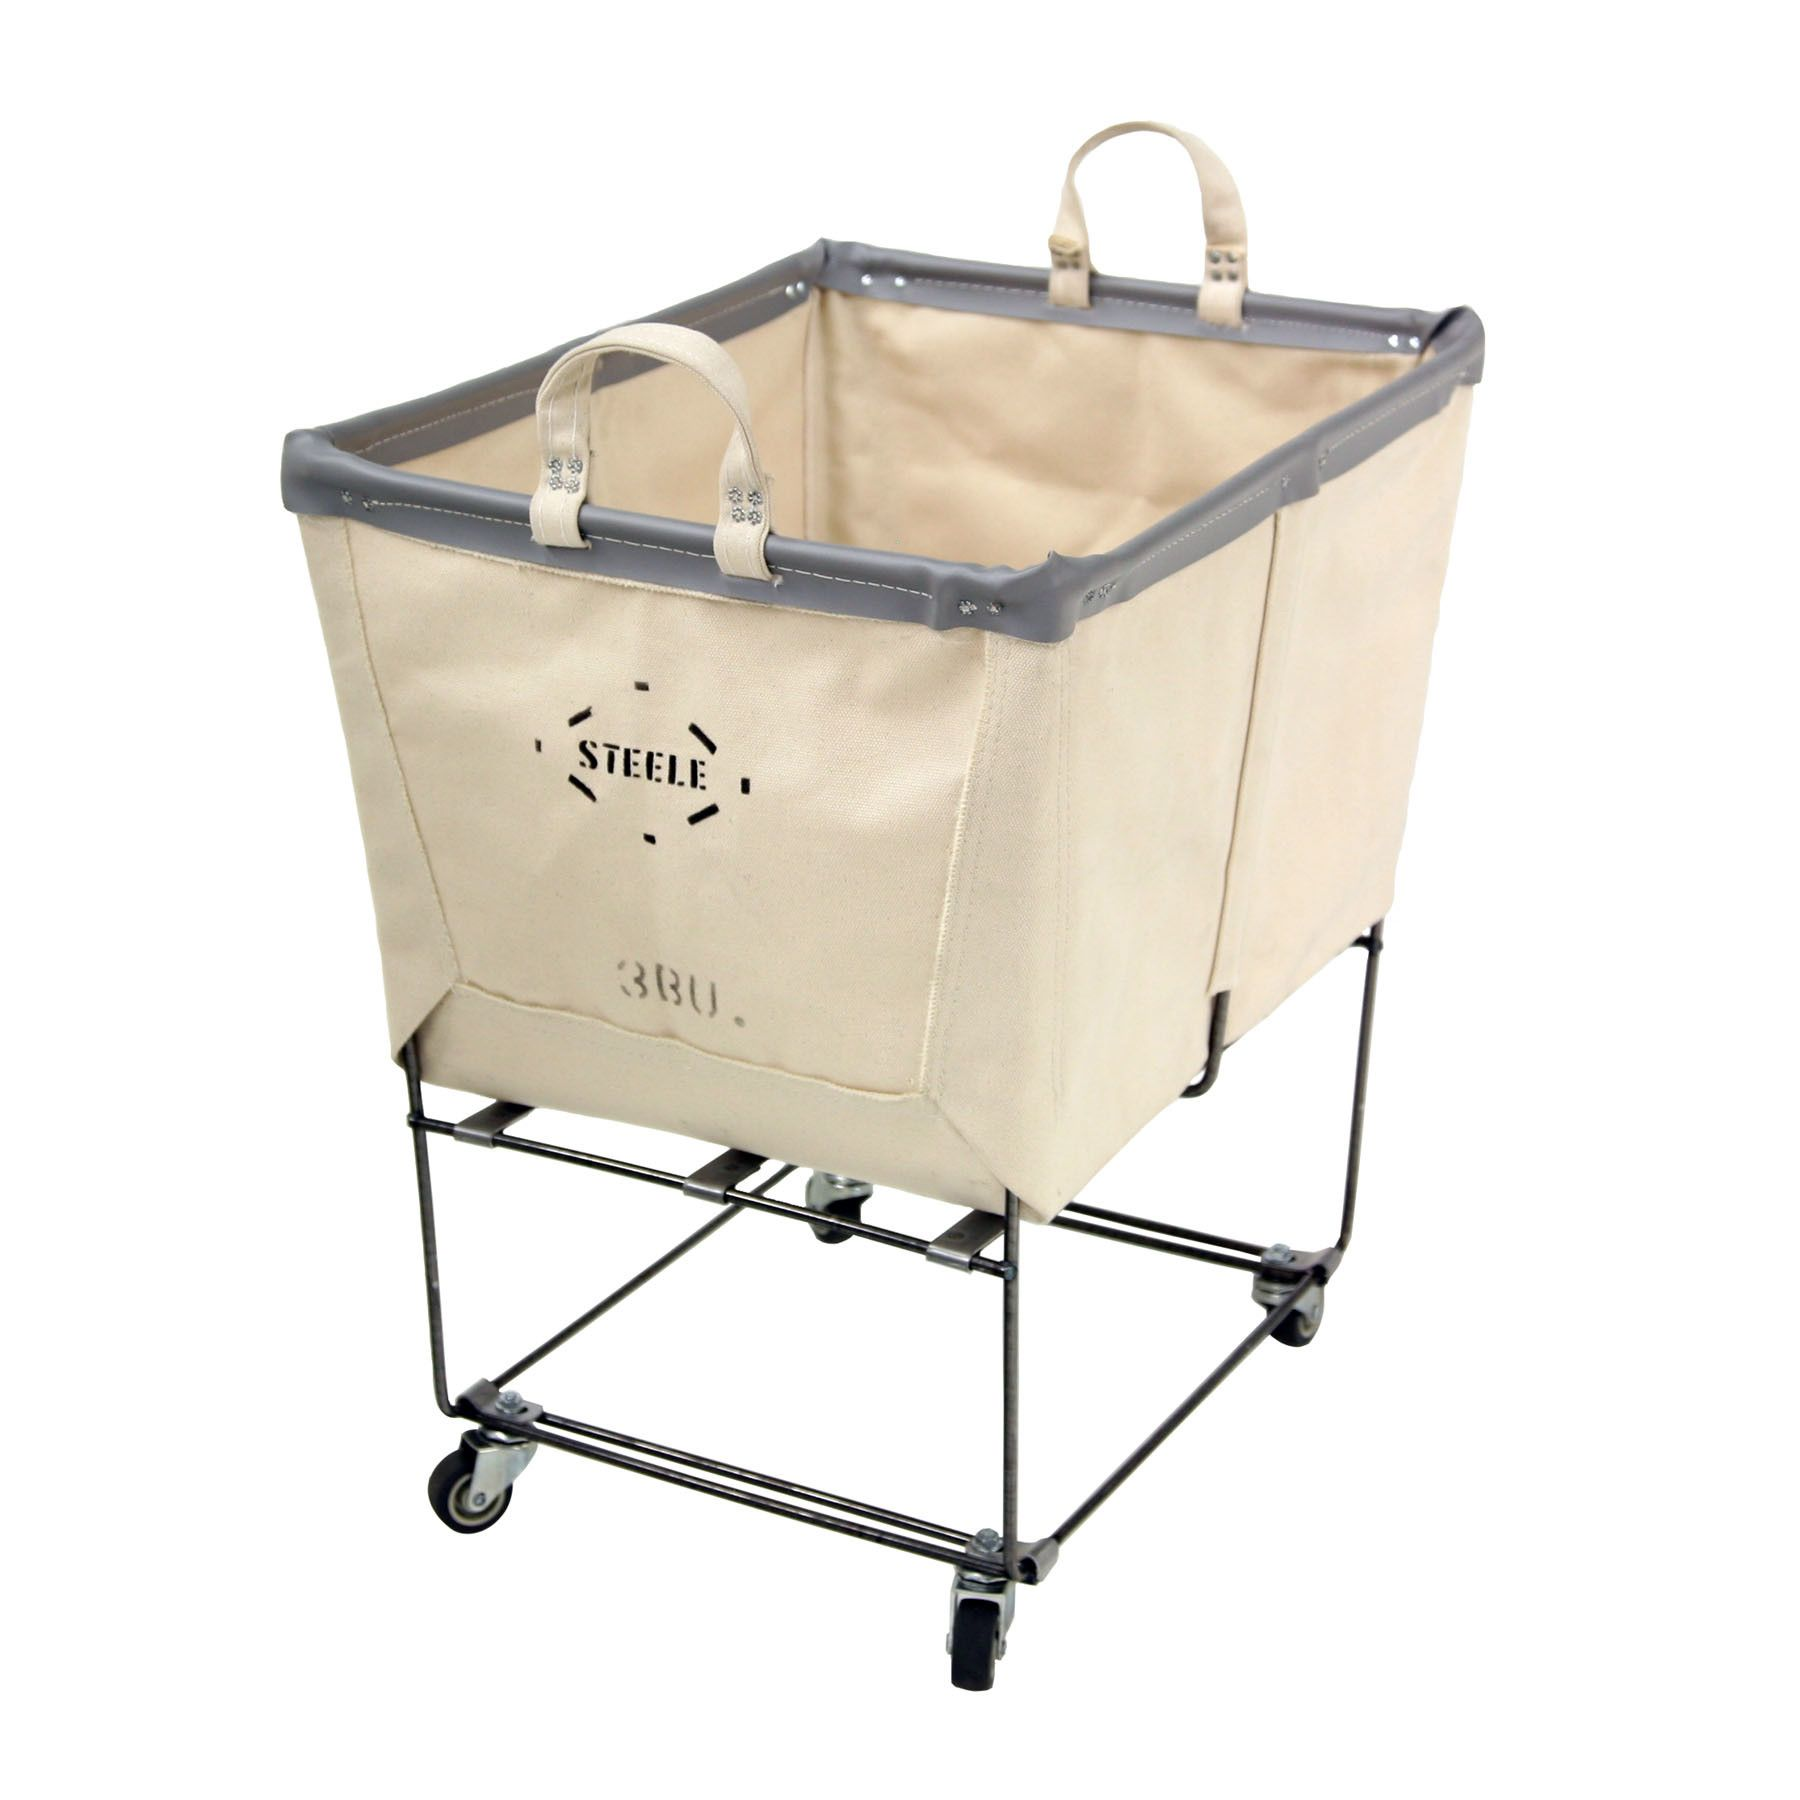 Elevated Utility Cart Laundry Cart Laundry Room Storage Small Laundry Room Organization